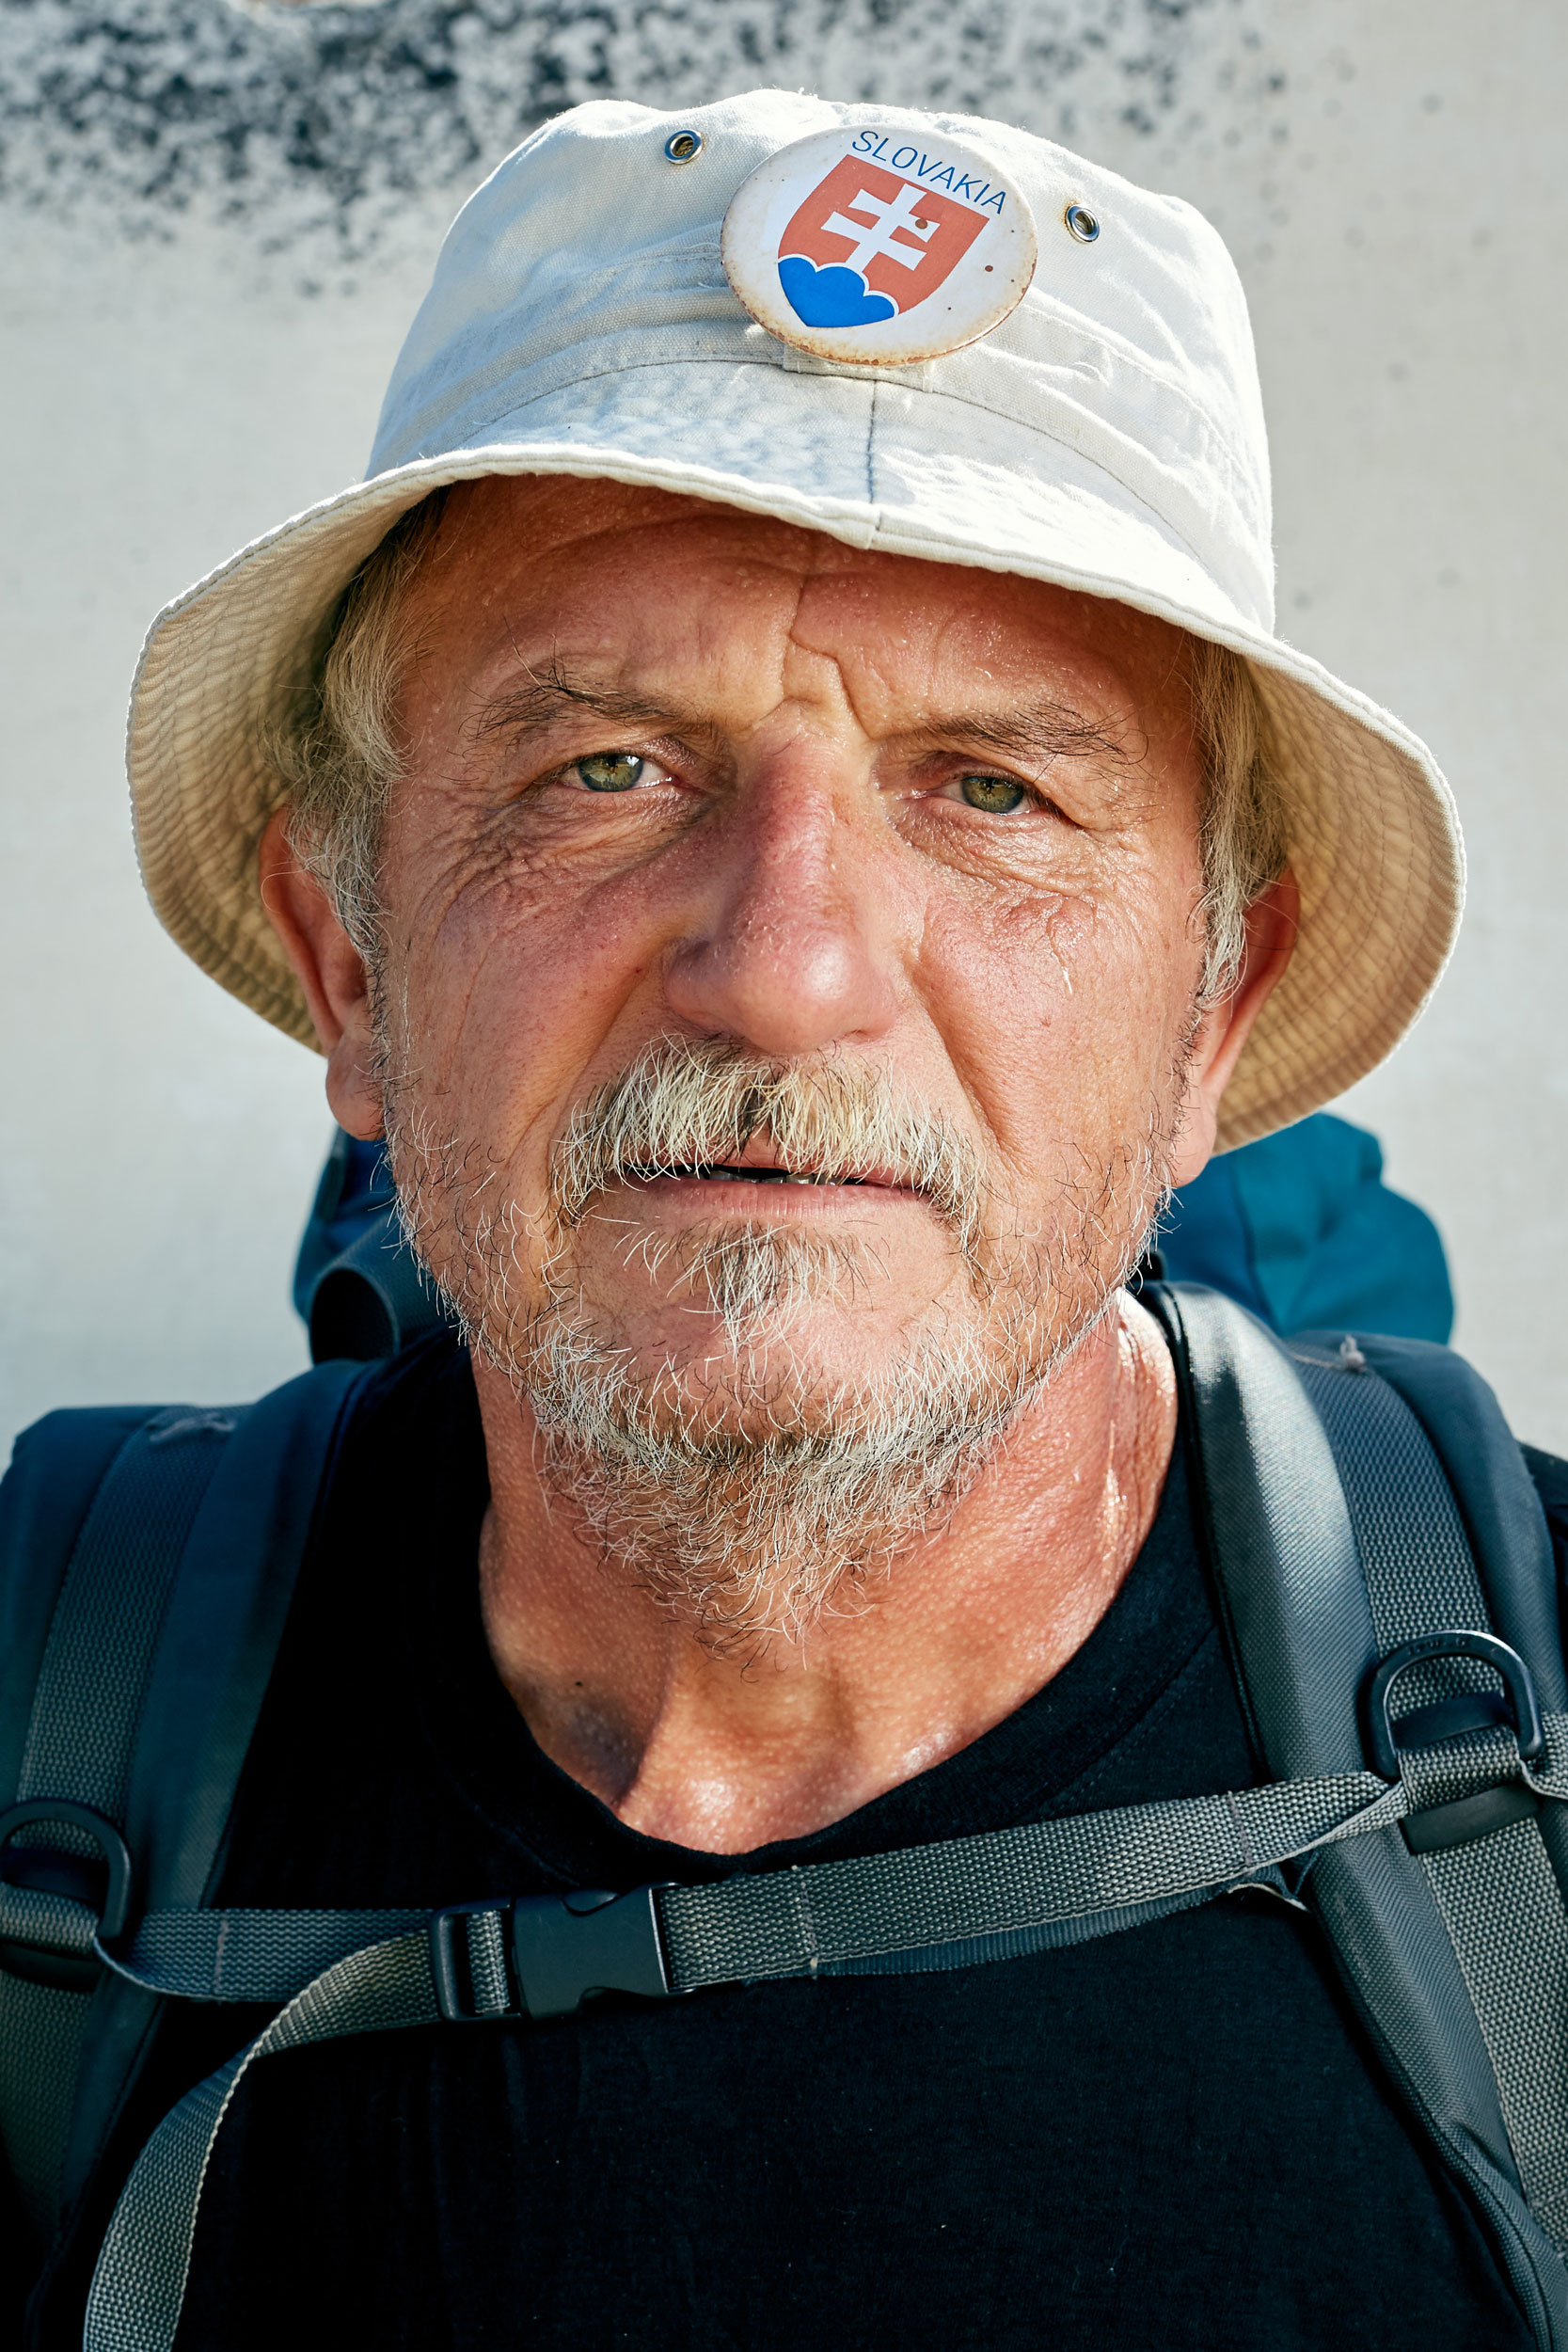 Camino pilgrim with a bucket hat and Slovakia badge by documentary portrait photographer Duncan Elliott